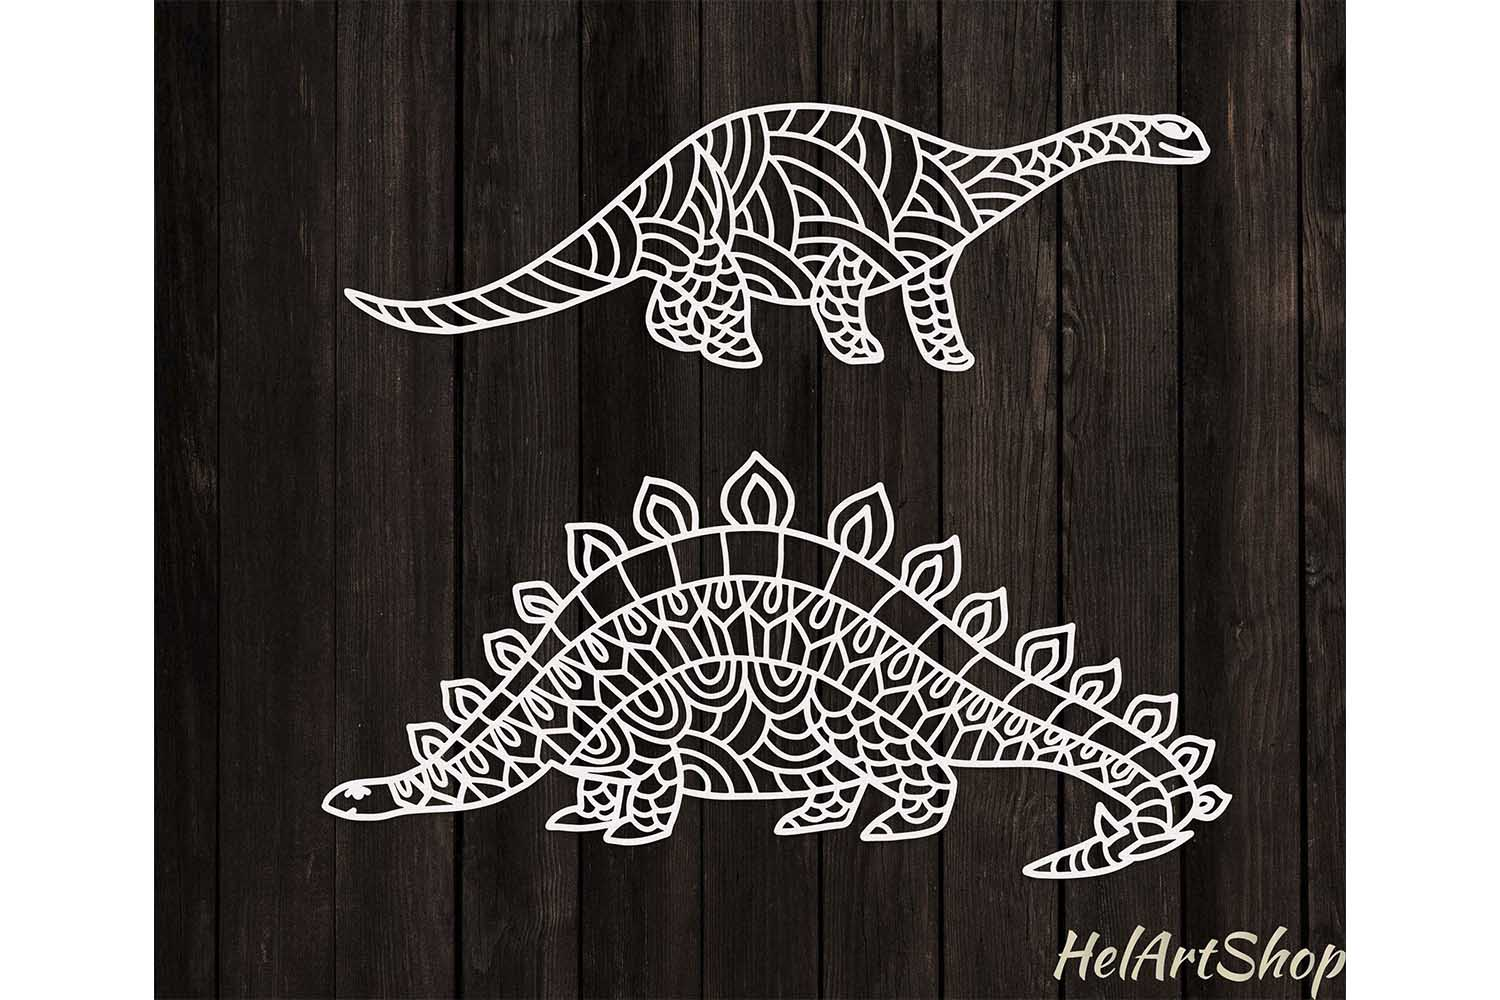 Download Free Dinosaur Bundle Graphic By Helartshop Creative Fabrica for Cricut Explore, Silhouette and other cutting machines.